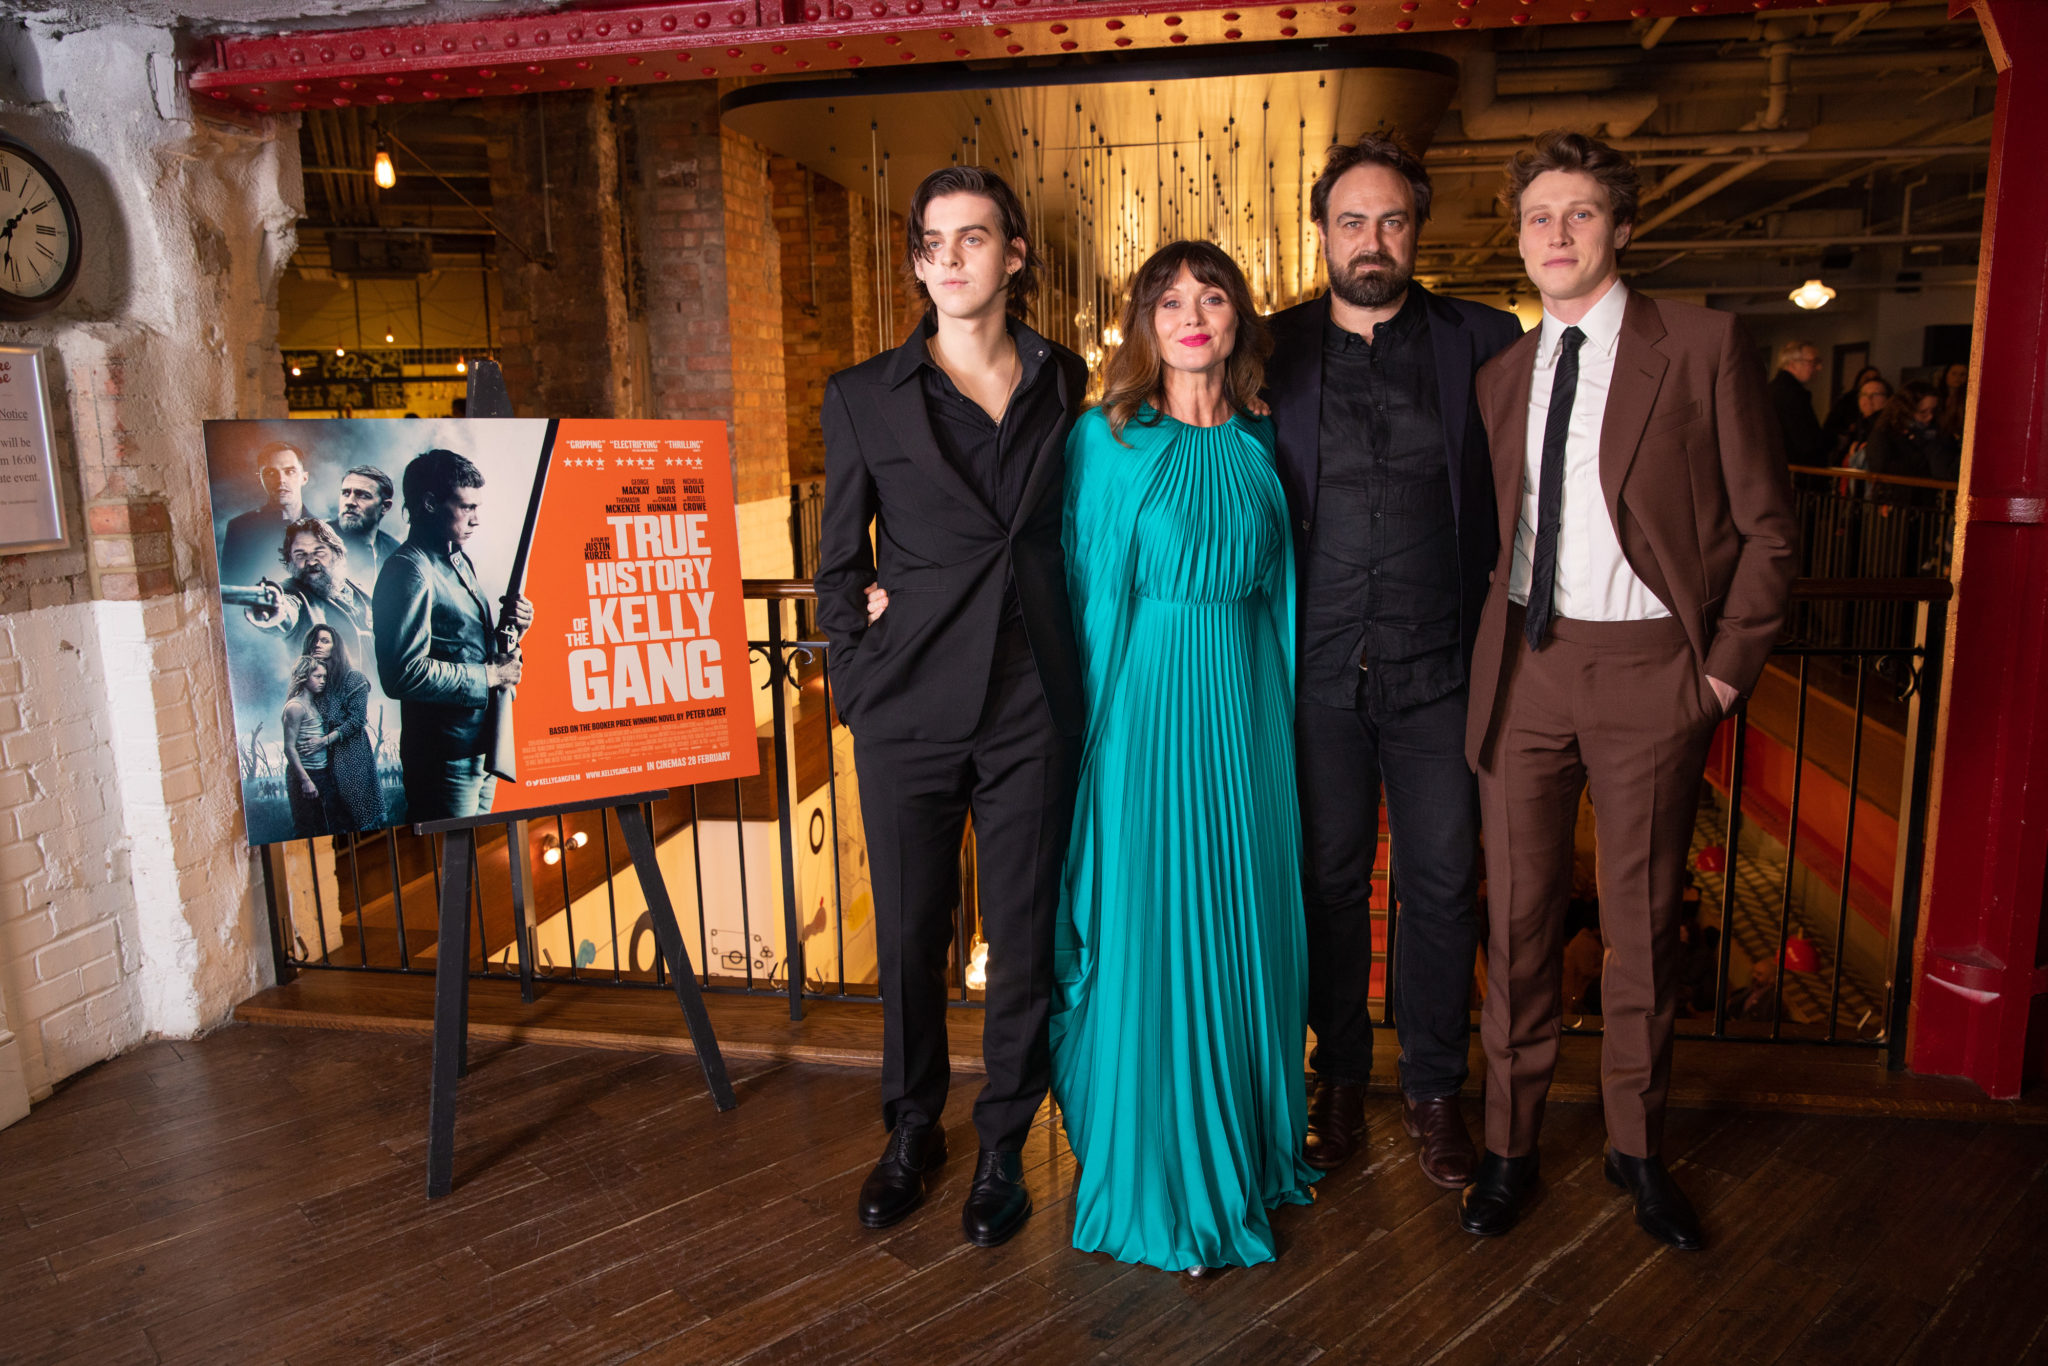 UK Premiere 0f True History Of The Kelly Gang